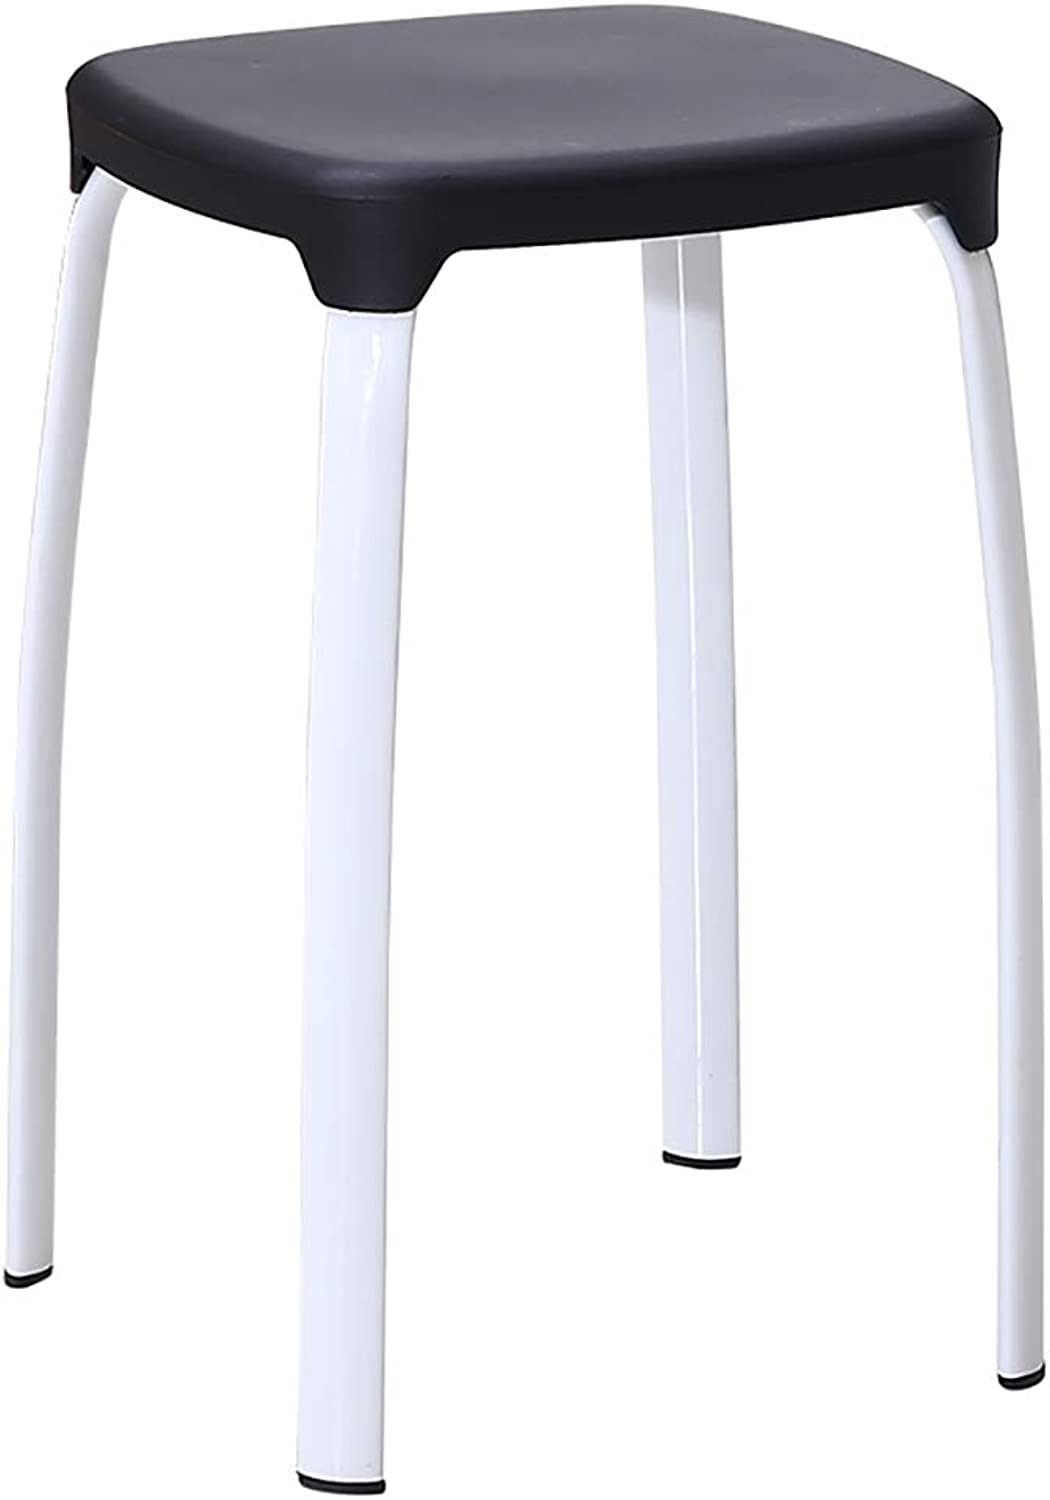 FW Plastic Padded Stool, Home Fashion shoes Bench Adult Table Stool color Stool, Multi-color Selection (color   Black, Size   Two)